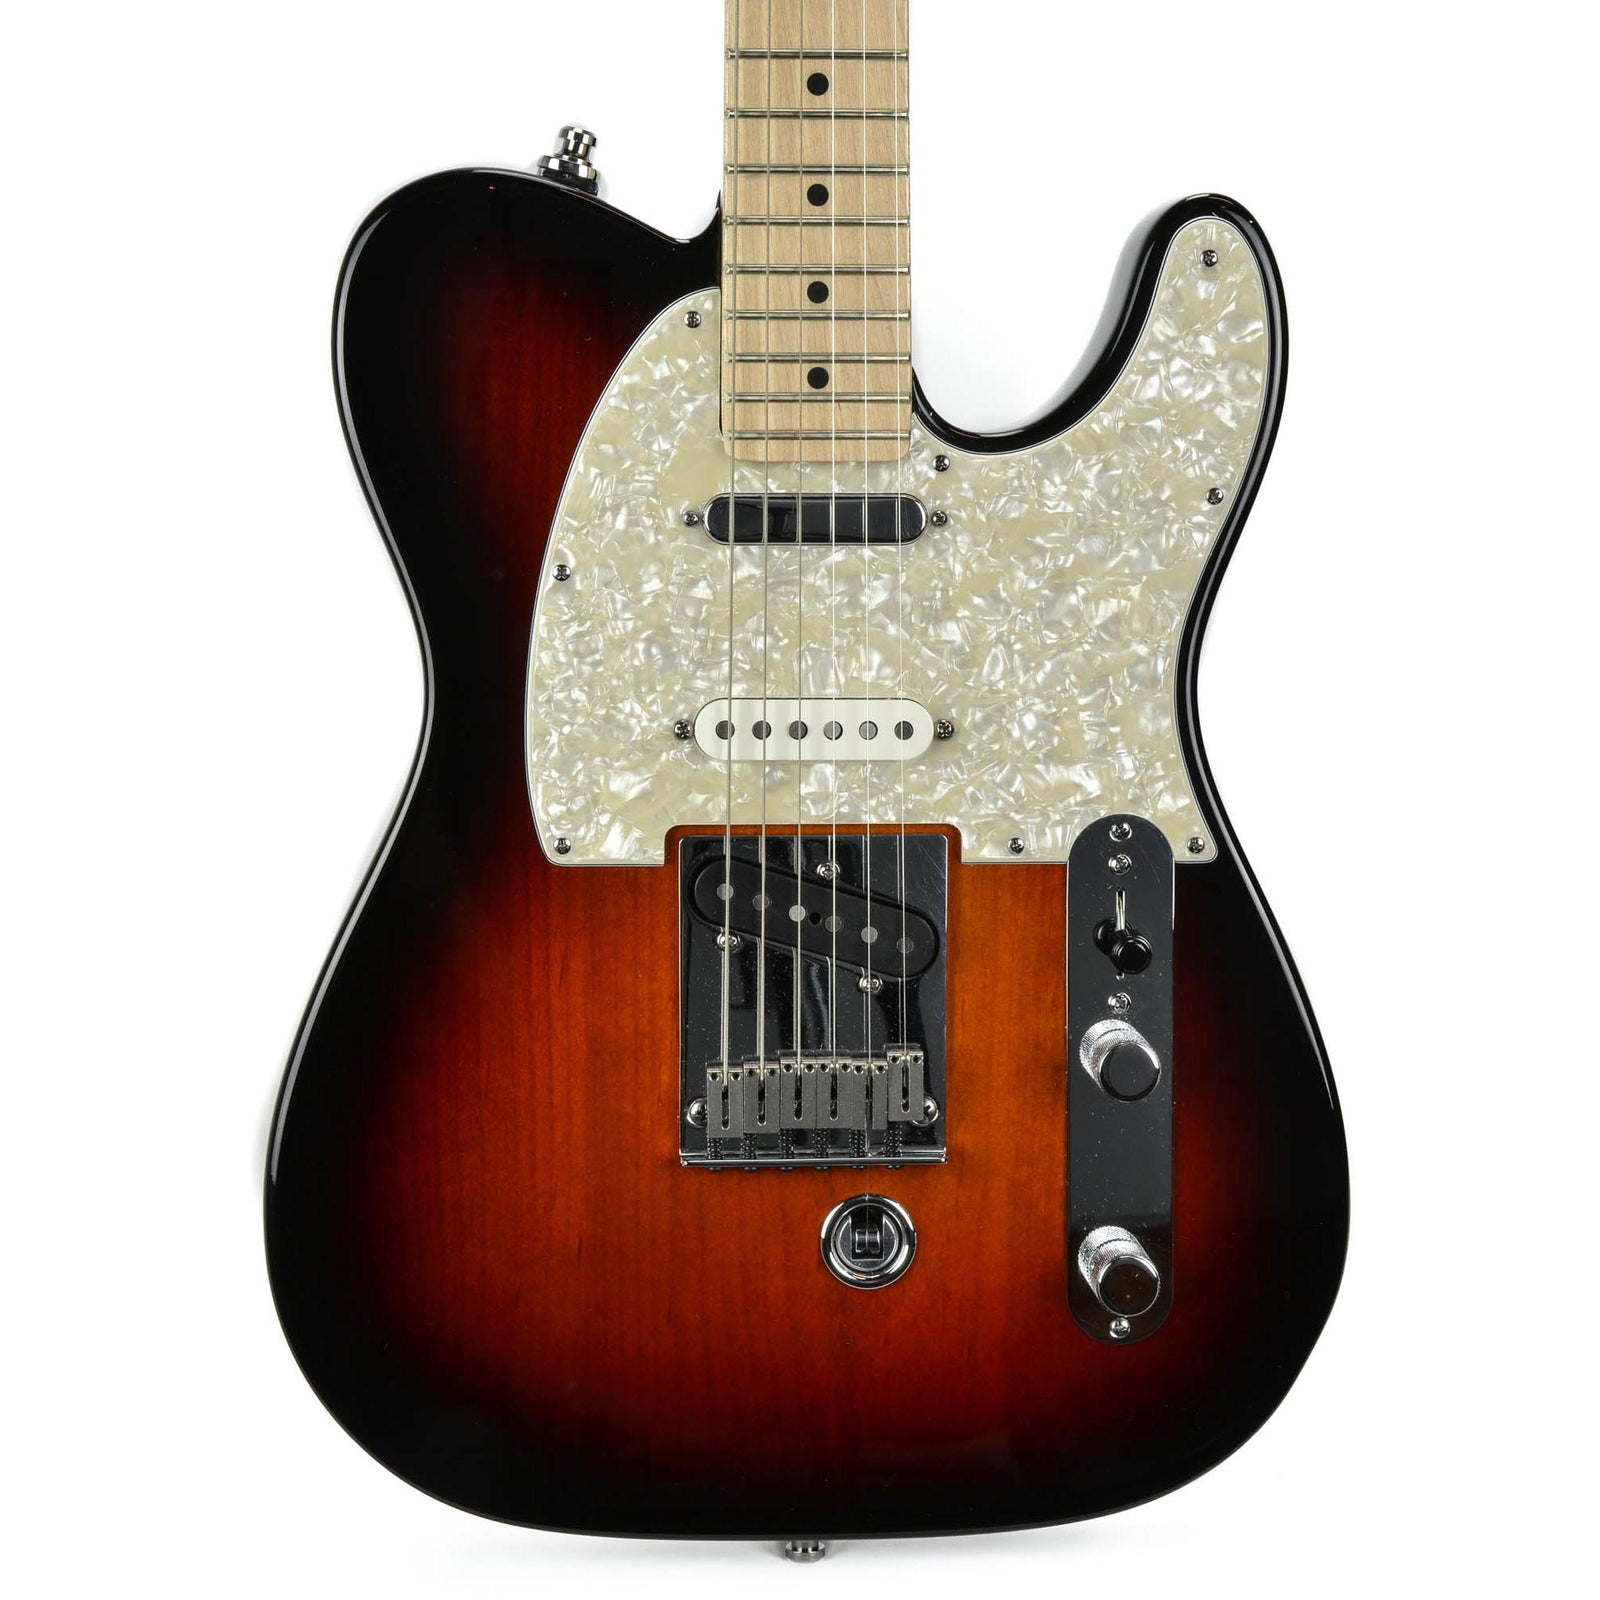 fender b bender nashville telecaster used russo music. Black Bedroom Furniture Sets. Home Design Ideas